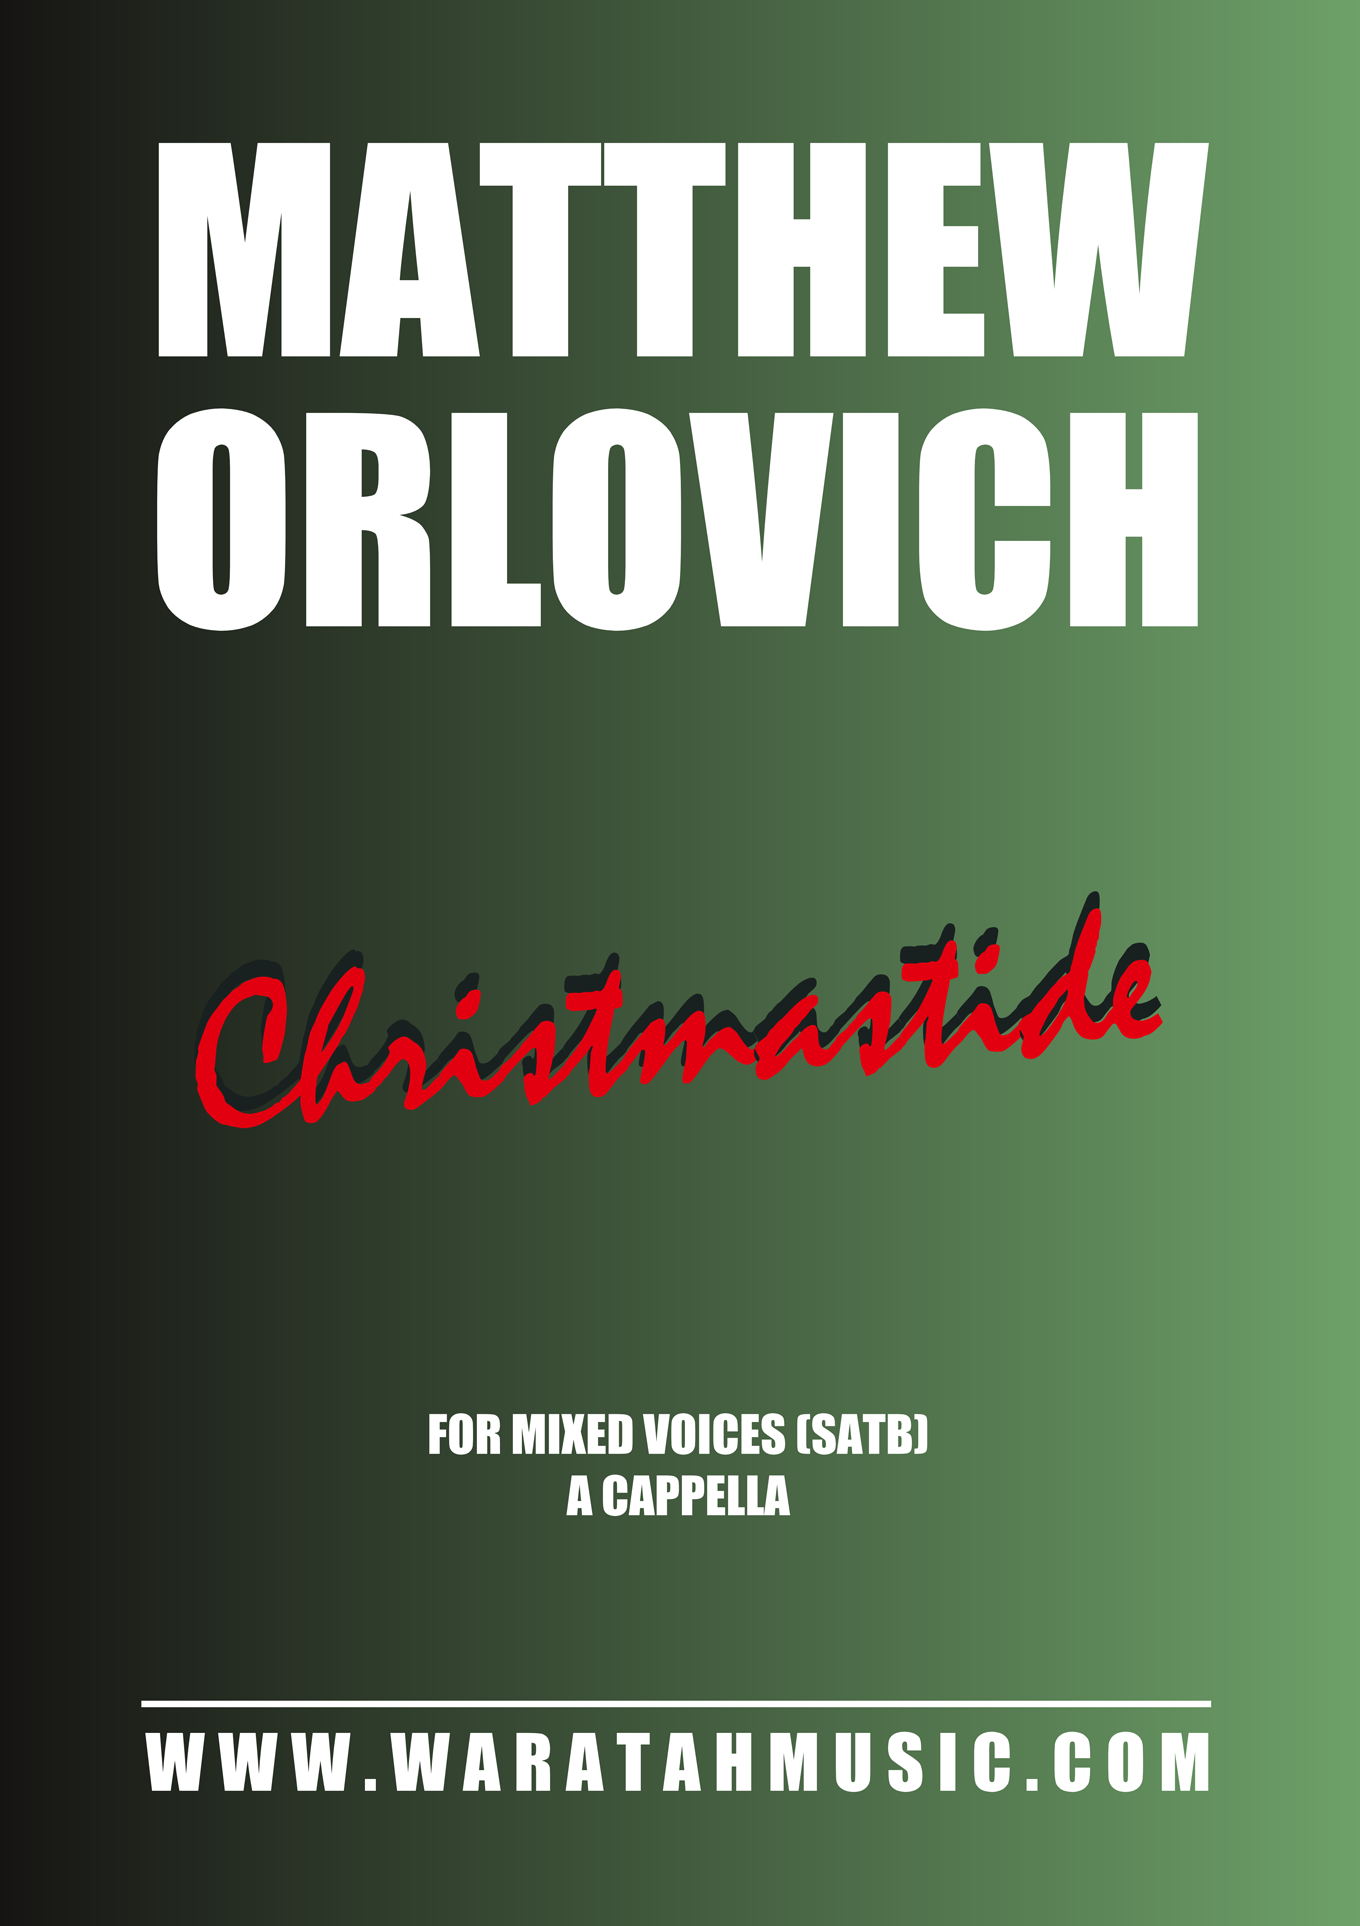 Christmastide for mixed voices (SATB), a cappella – By Matthew Orlovich. Published by Waratah Music.